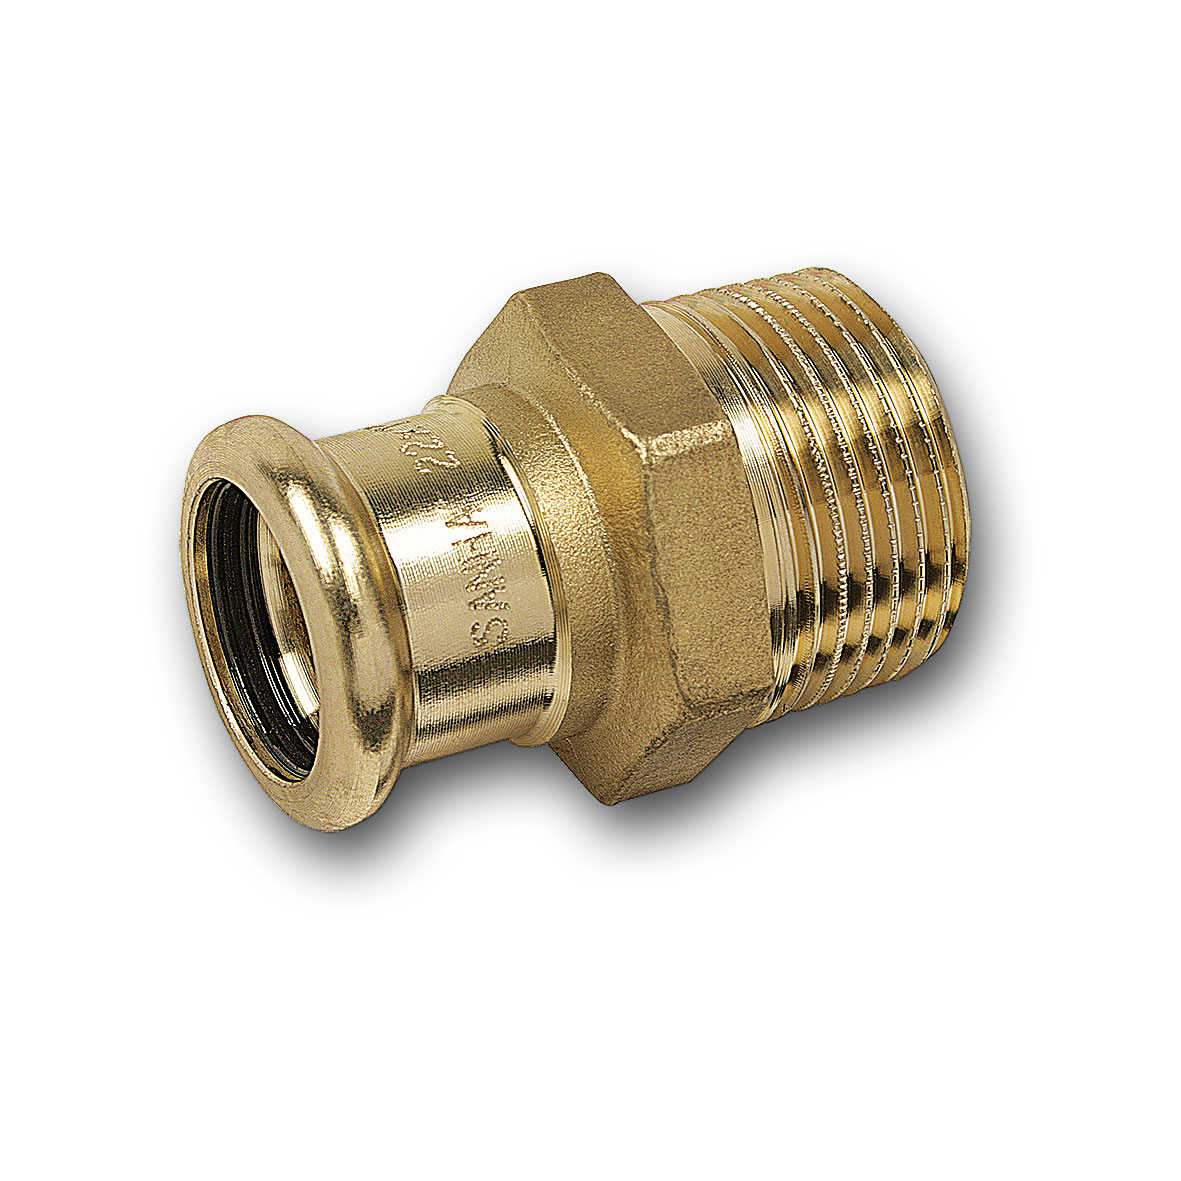 male adaptor with female end & male thread